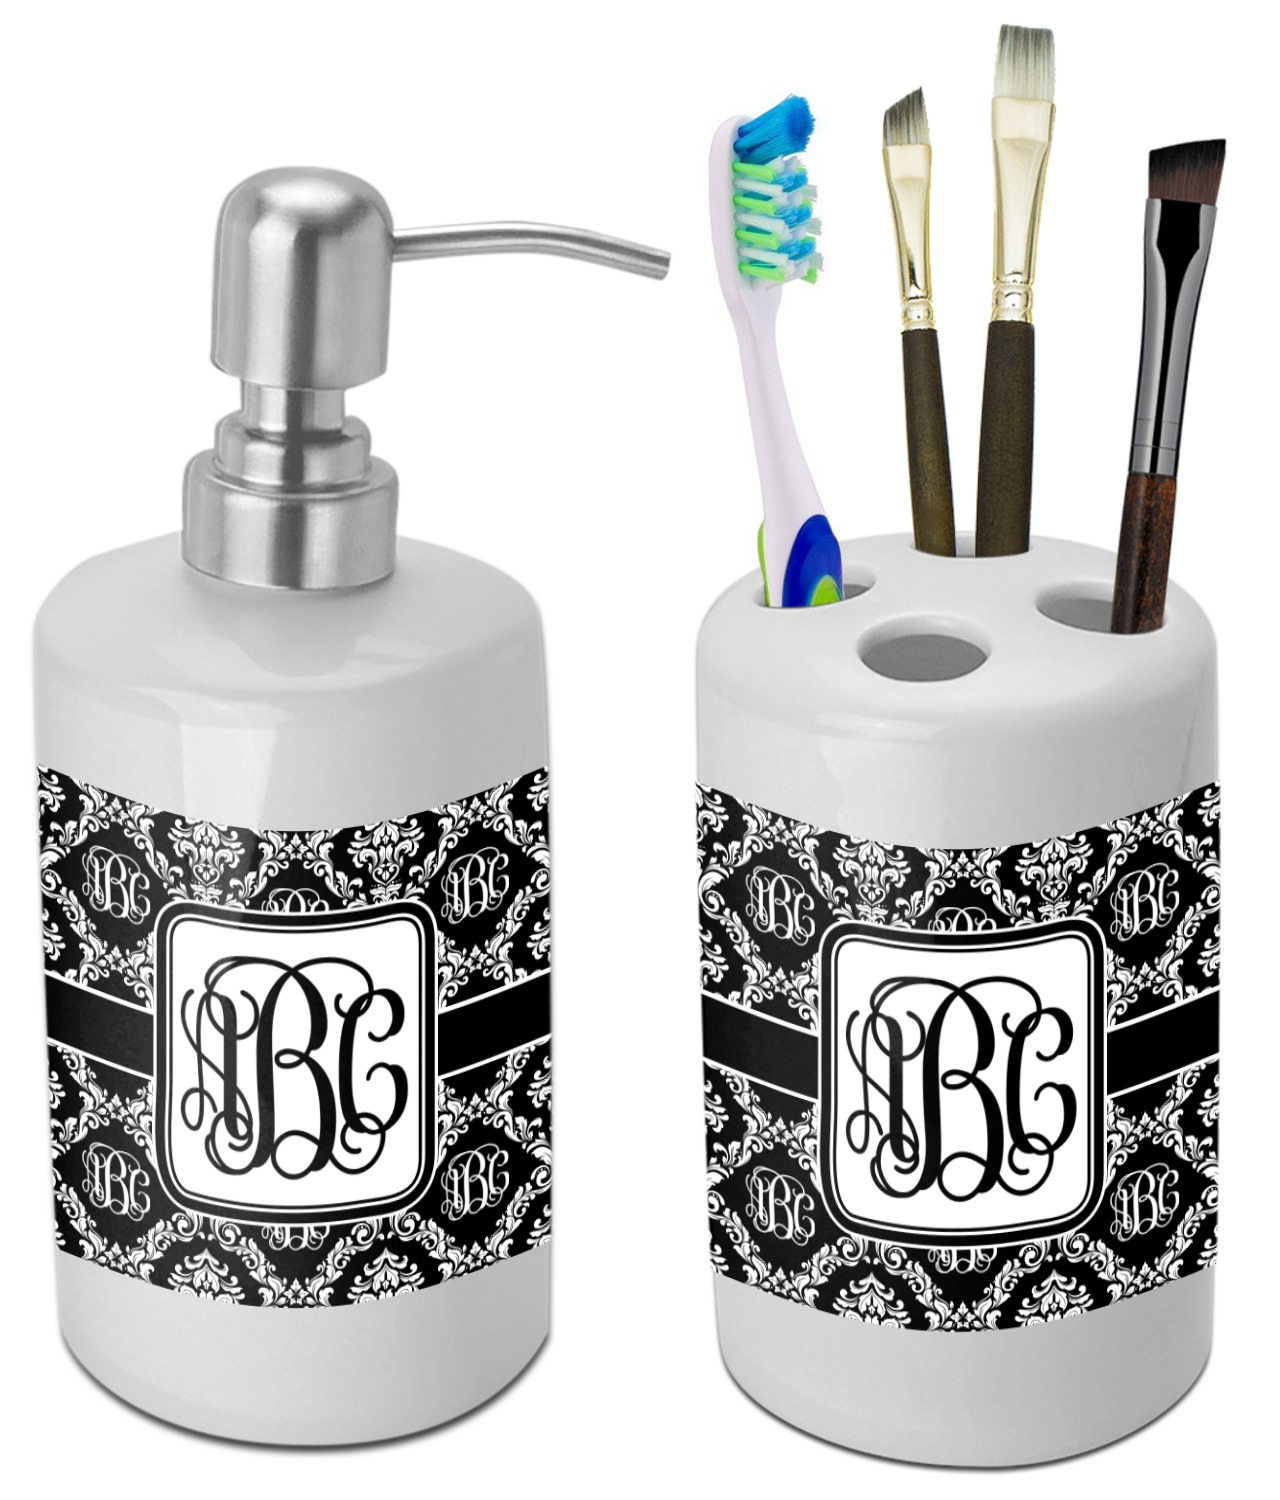 Monogrammed Damask Bathroom Accessories Set (Ceramic) (Personalized ...